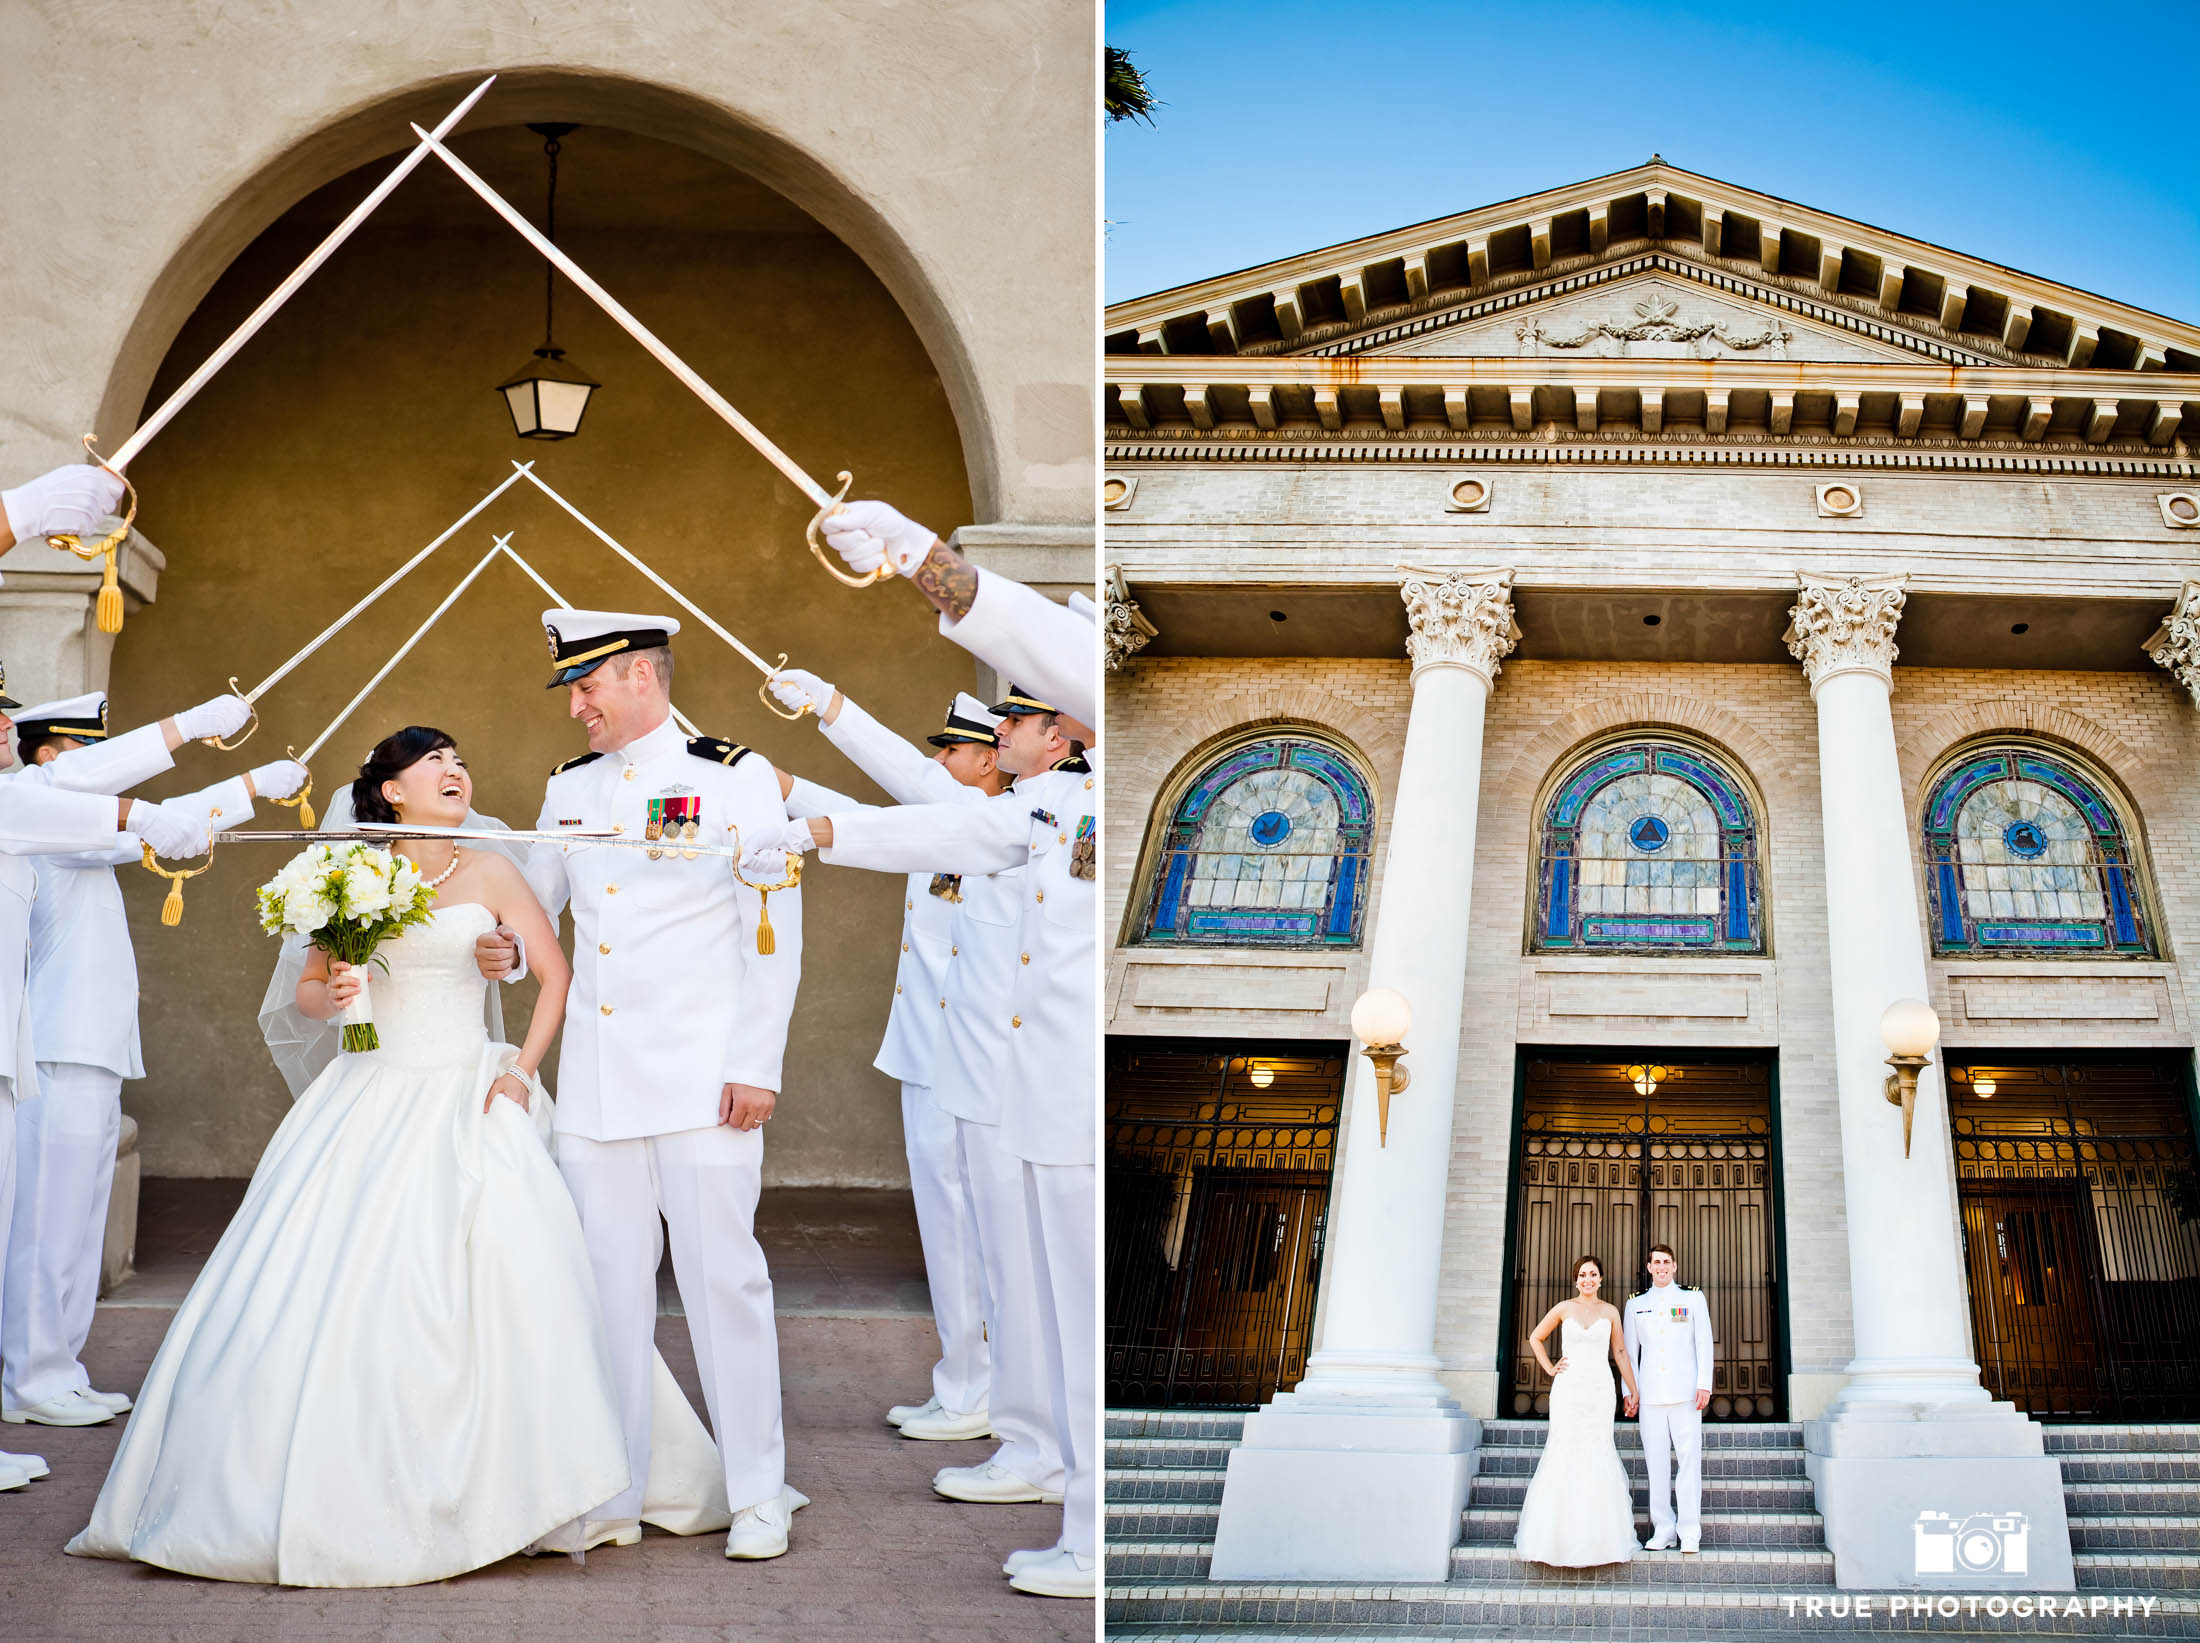 Military Wedding Couples celebrate with Arch of Swords after ceremony